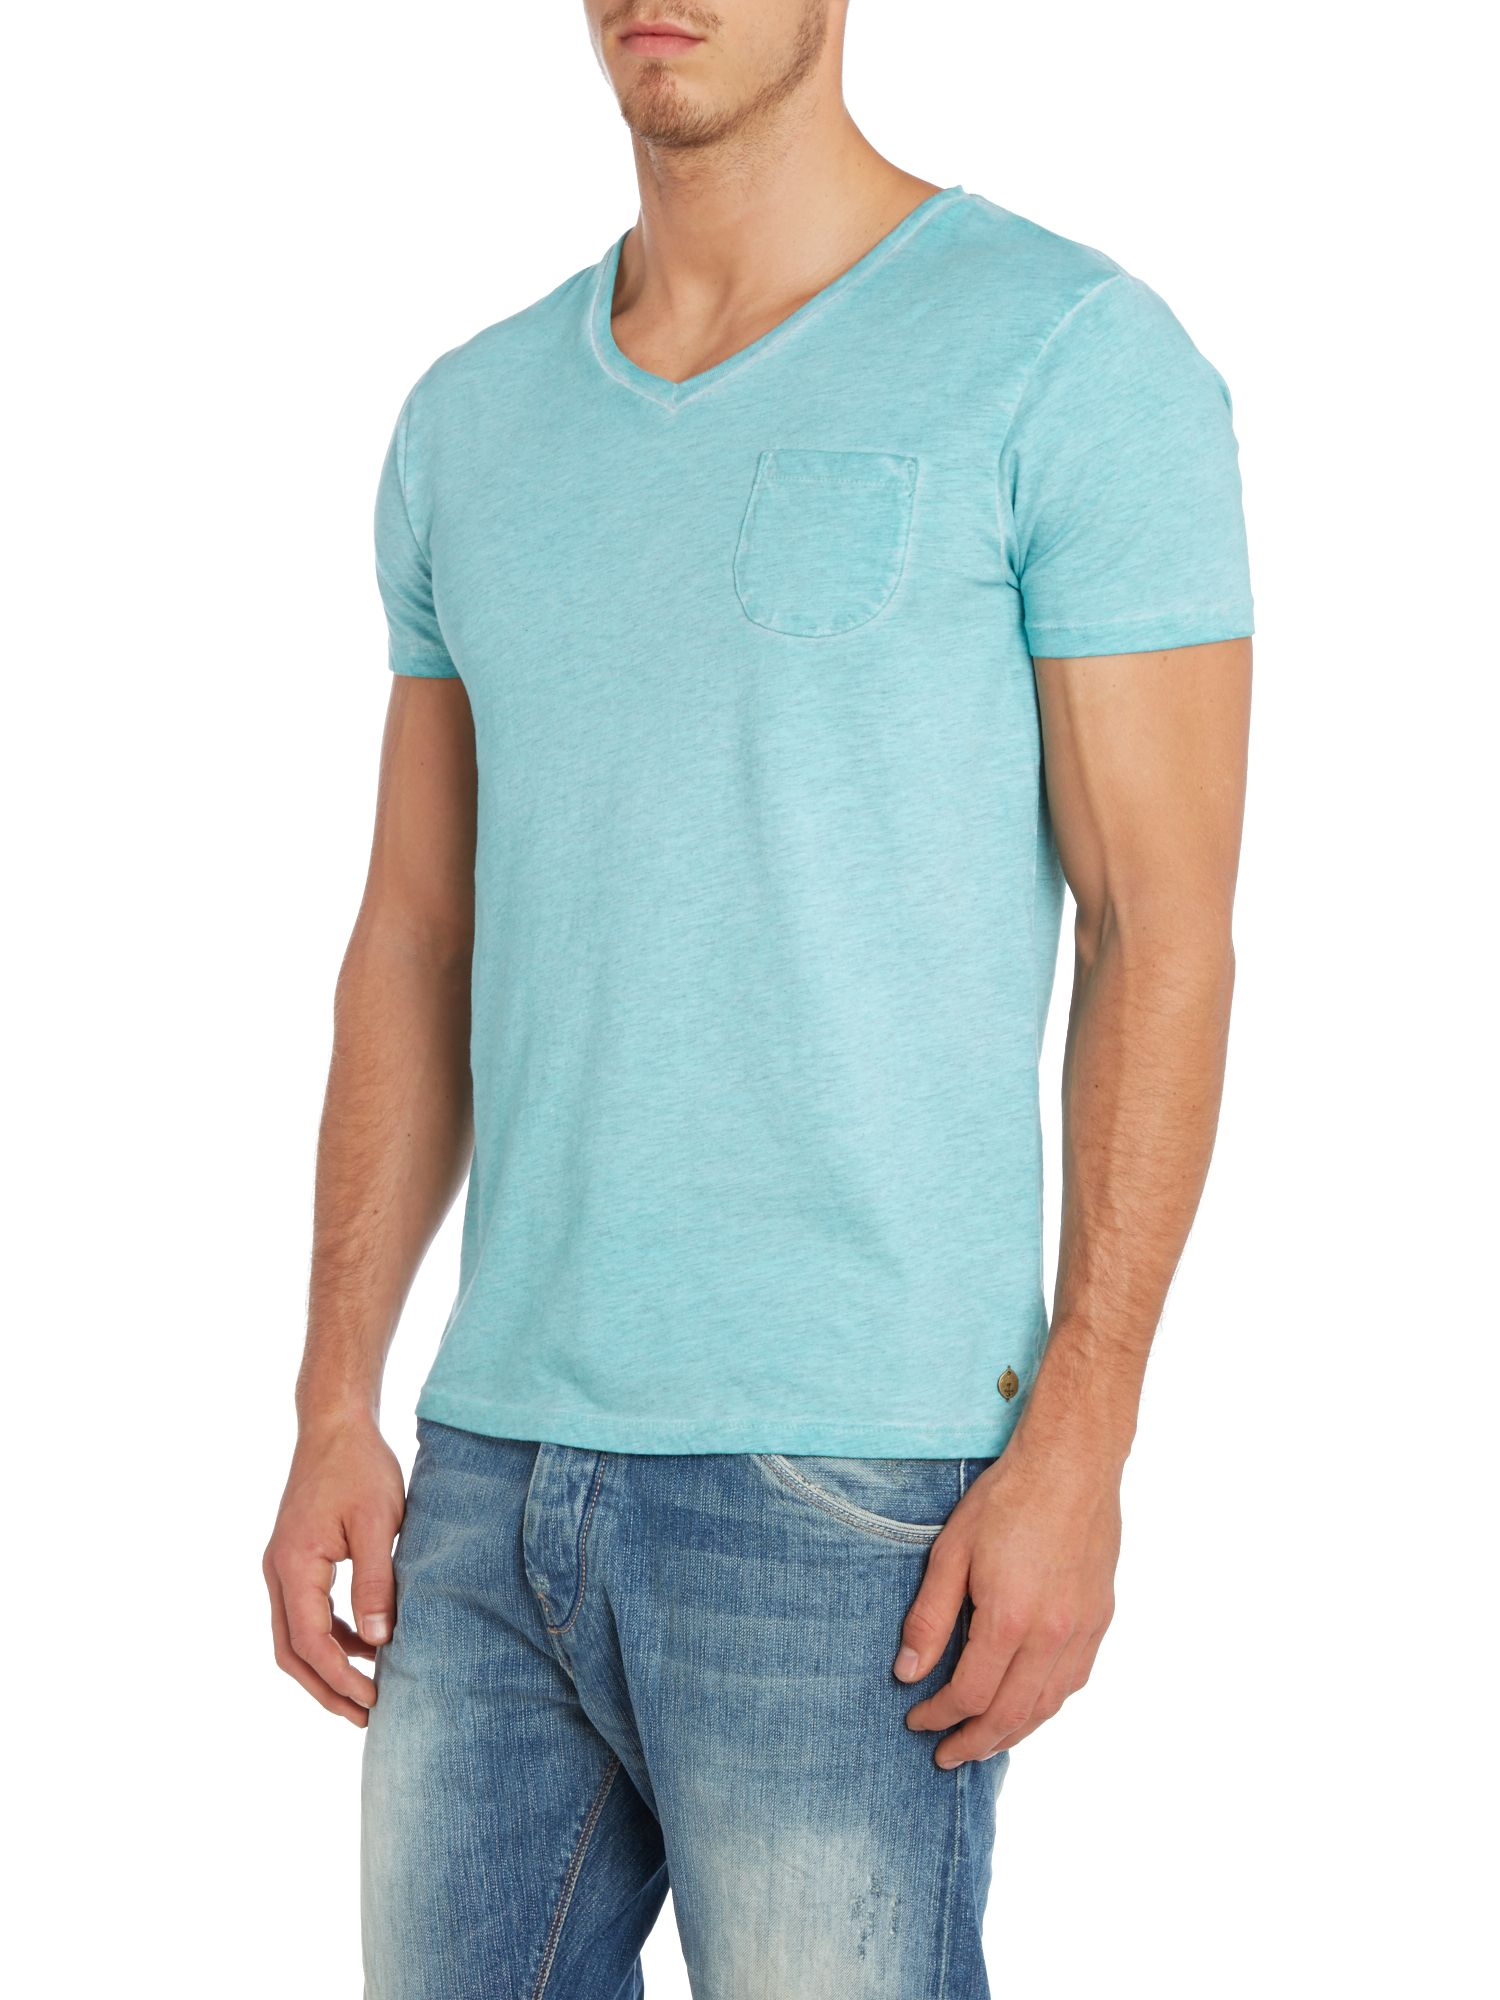 Oil washed v-neck pocket tee